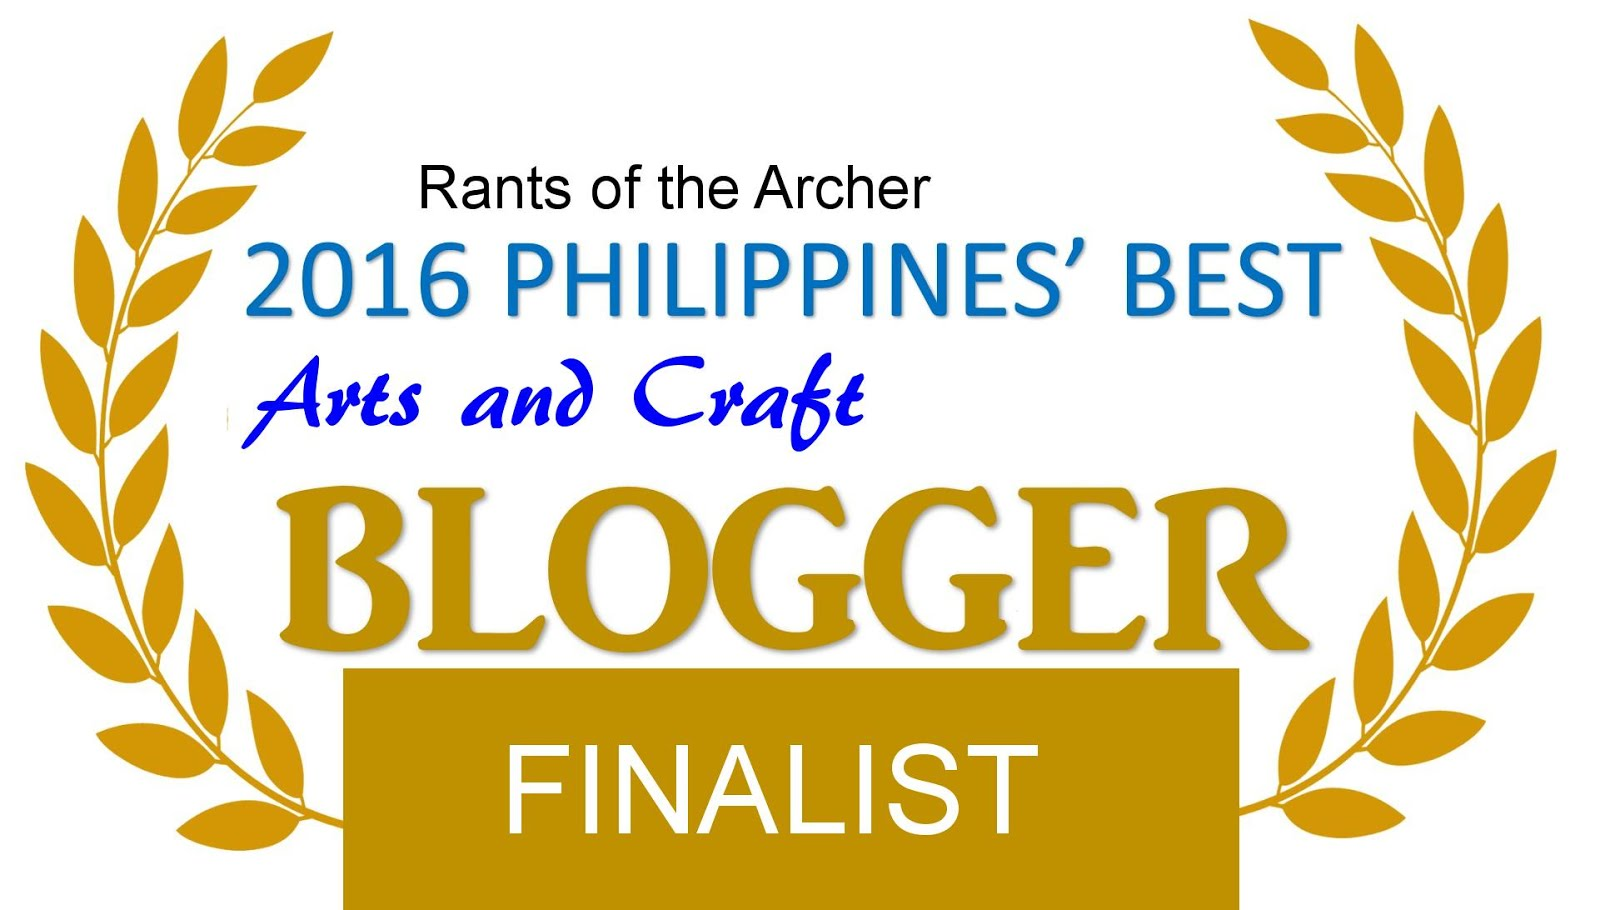 The Philippine Bloggers Awards 2016